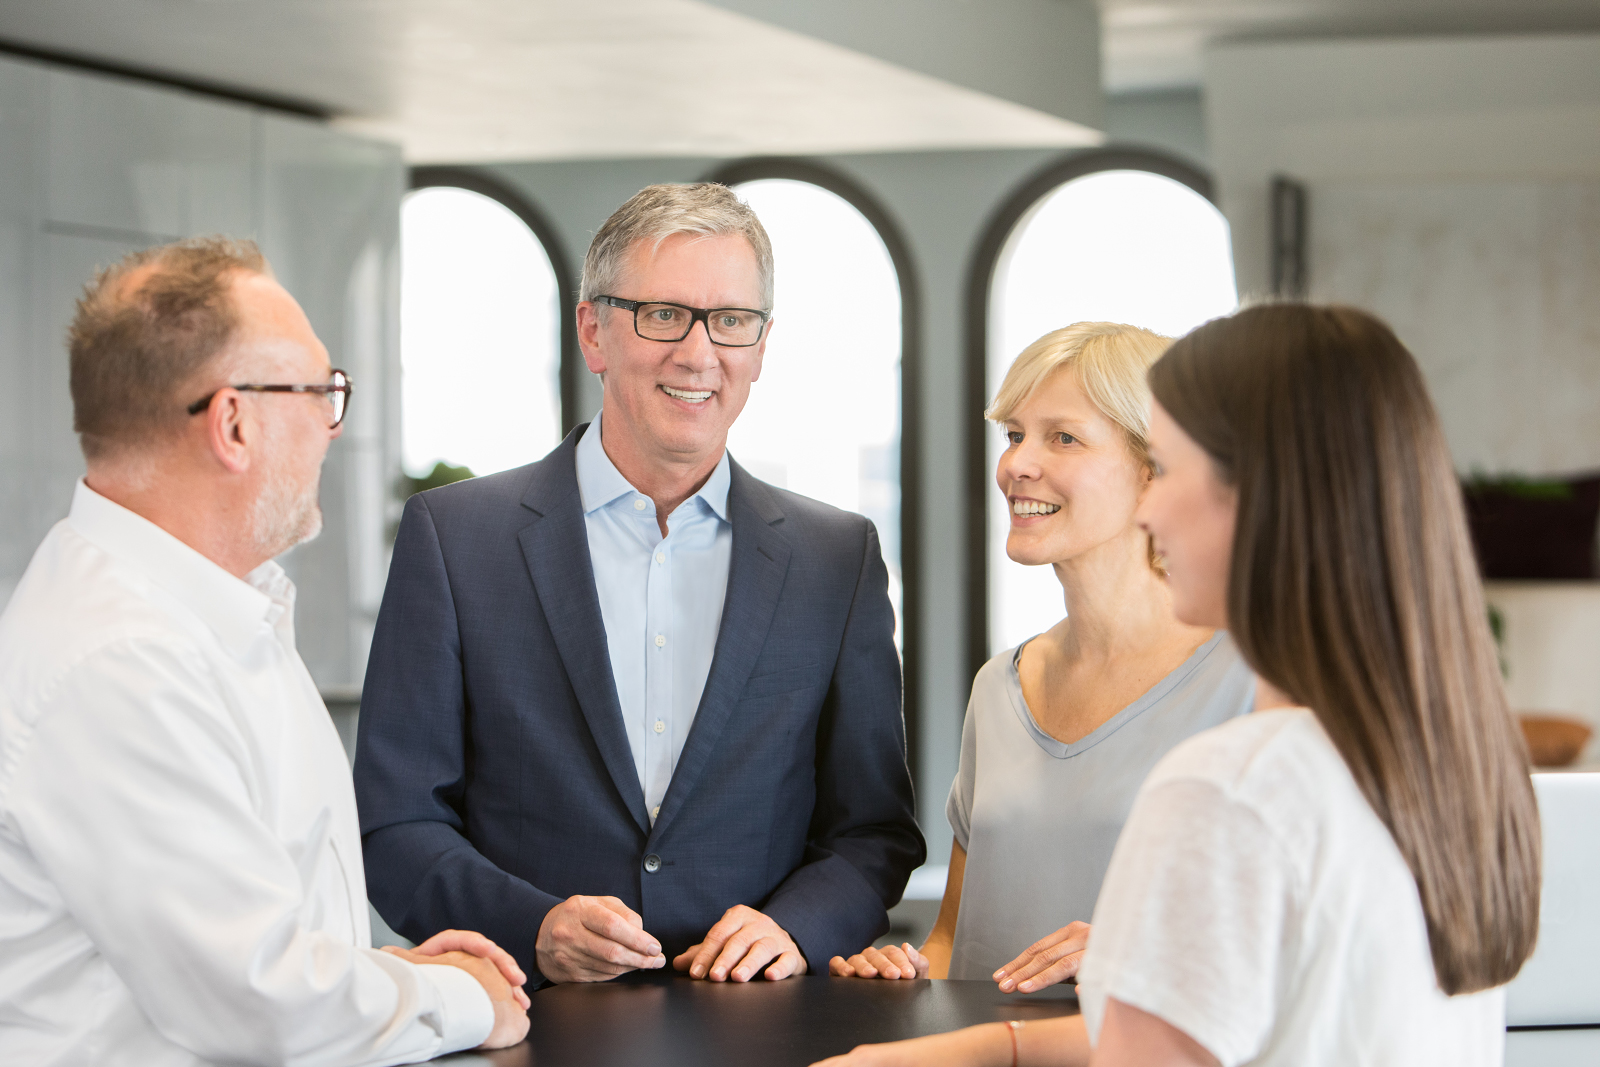 03 schneider executives consulting firma businessportraits - Consulting Fotografie im Design Office